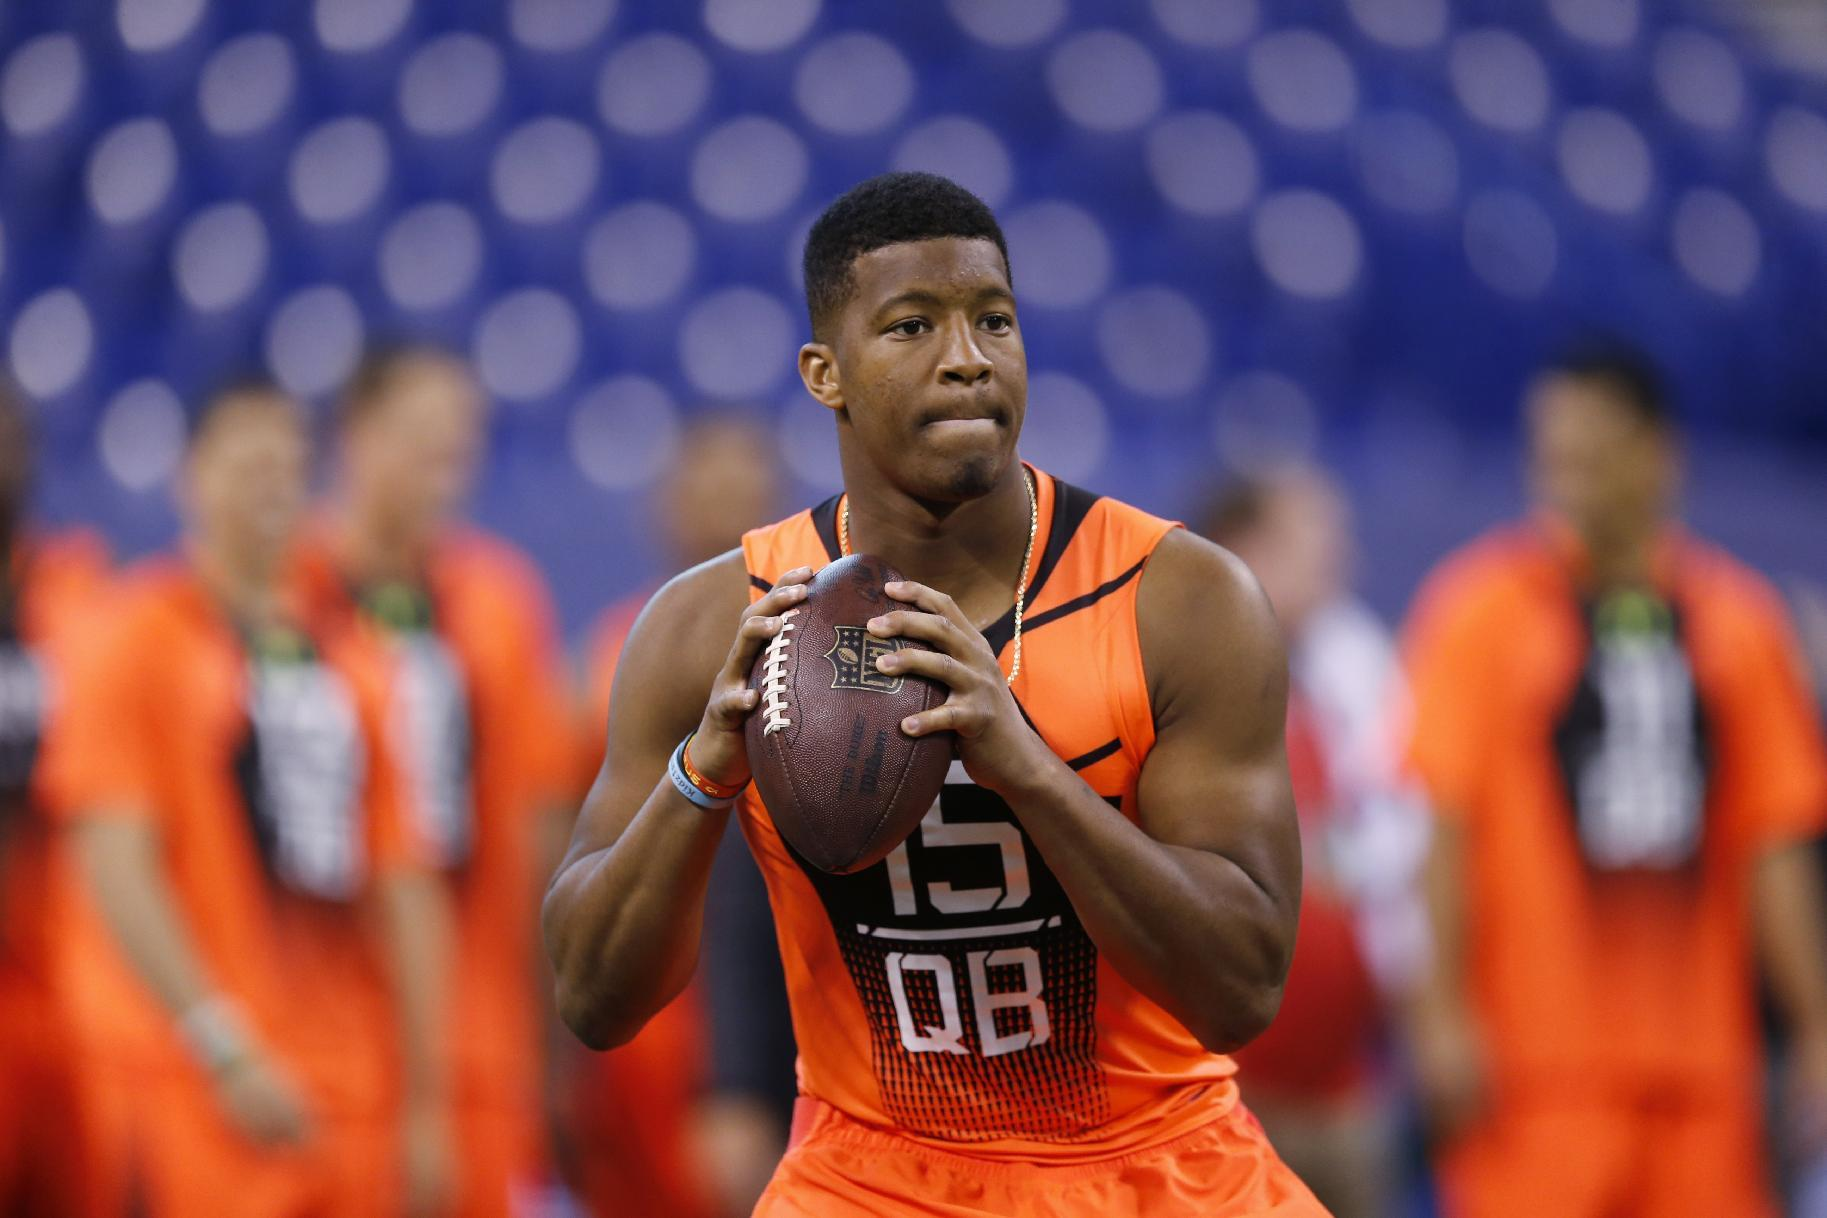 FILE - In this Feb. 21, 2015, file photo, Florida State quarterback Jameis Winston runs a drill at the NFL football scouting combine in Indianapolis. While 26 draft-eligible players have accepted invitations from the NFL to attend the proceedings later this month, Winston and Marcus Mariota are not among them. The two most recent Heisman Trophy winners and highest-profile players in this year's crop have opted to stay home with their families for the April 30-May 2 draft. (AP Photo/Julio Cortez, File)